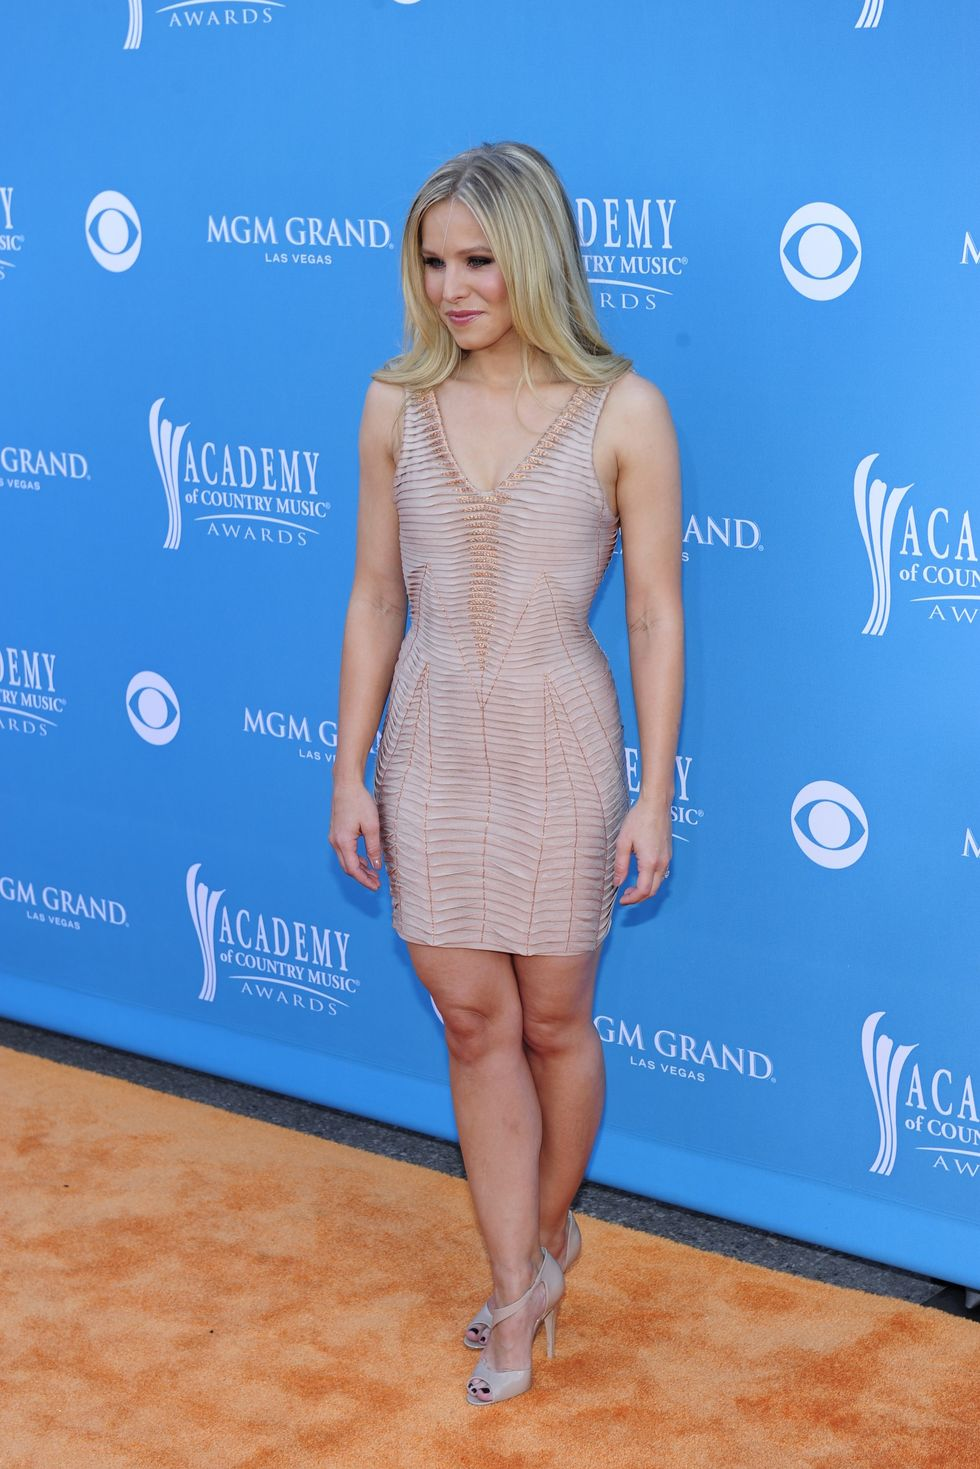 Kristen Bell 2010 : kristen-bell-at-45th-annual-academy-of-country-music-awards-15